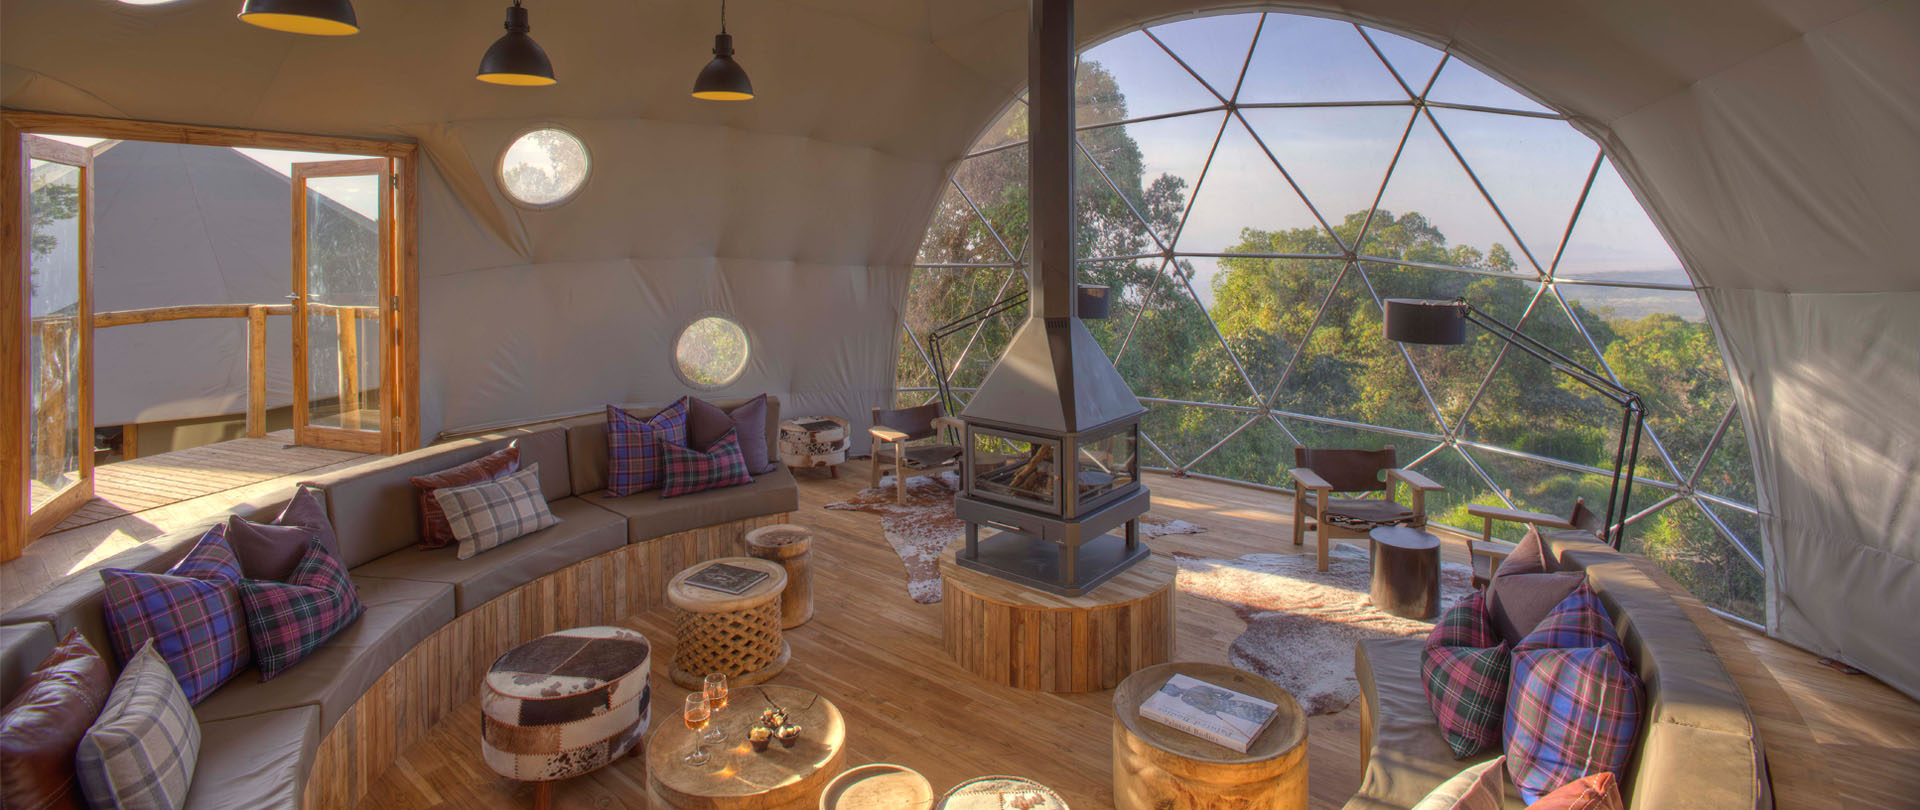 pacific-domes-dwell-dome-africa